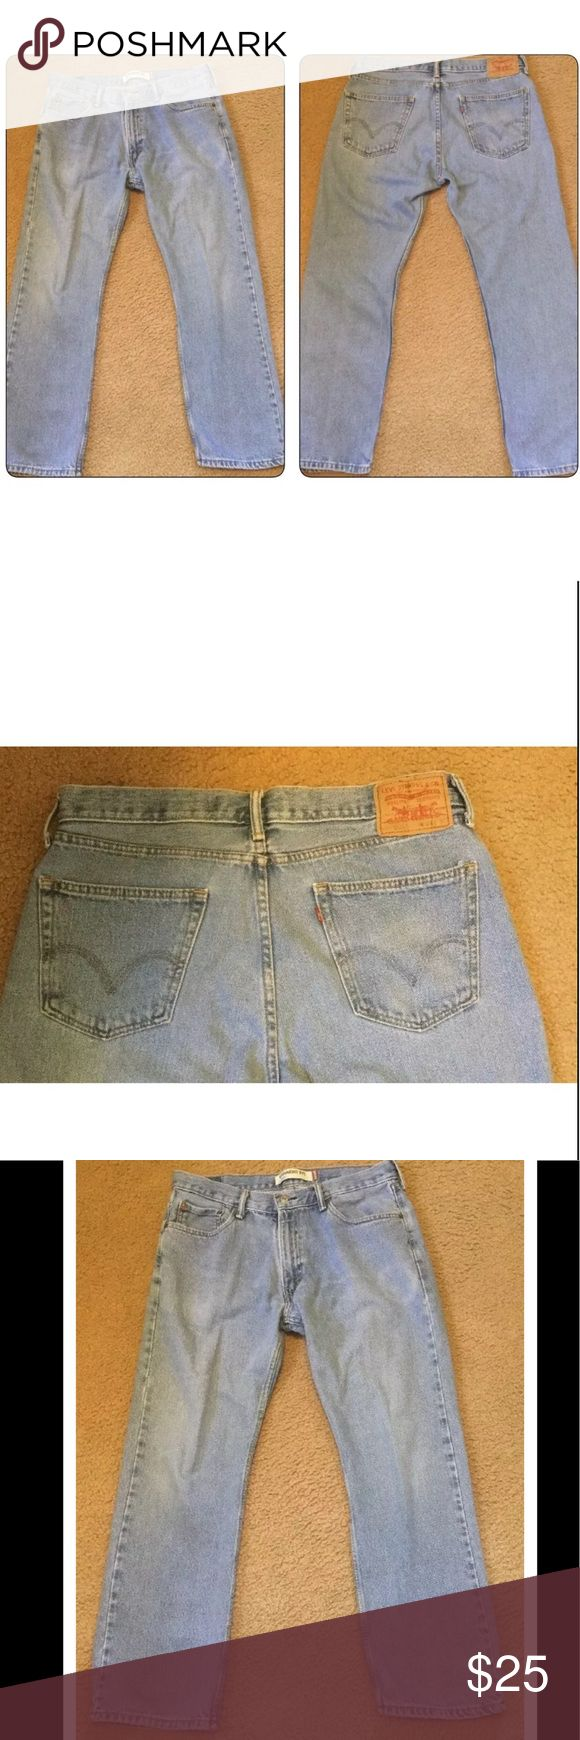 """Men's LEVIS 505 jeans straight 34x29 light wash Very nice pre-owned jeans with no observed flaws or defects. Levi's 505 Straight Fit. Tag size is 34x30. Actual size is 34x29.  Please go by hand measurements.   waist: 17""""  rise: 11""""  inseam: 29""""  leg opening: 8""""   J17 Jeans Straight"""